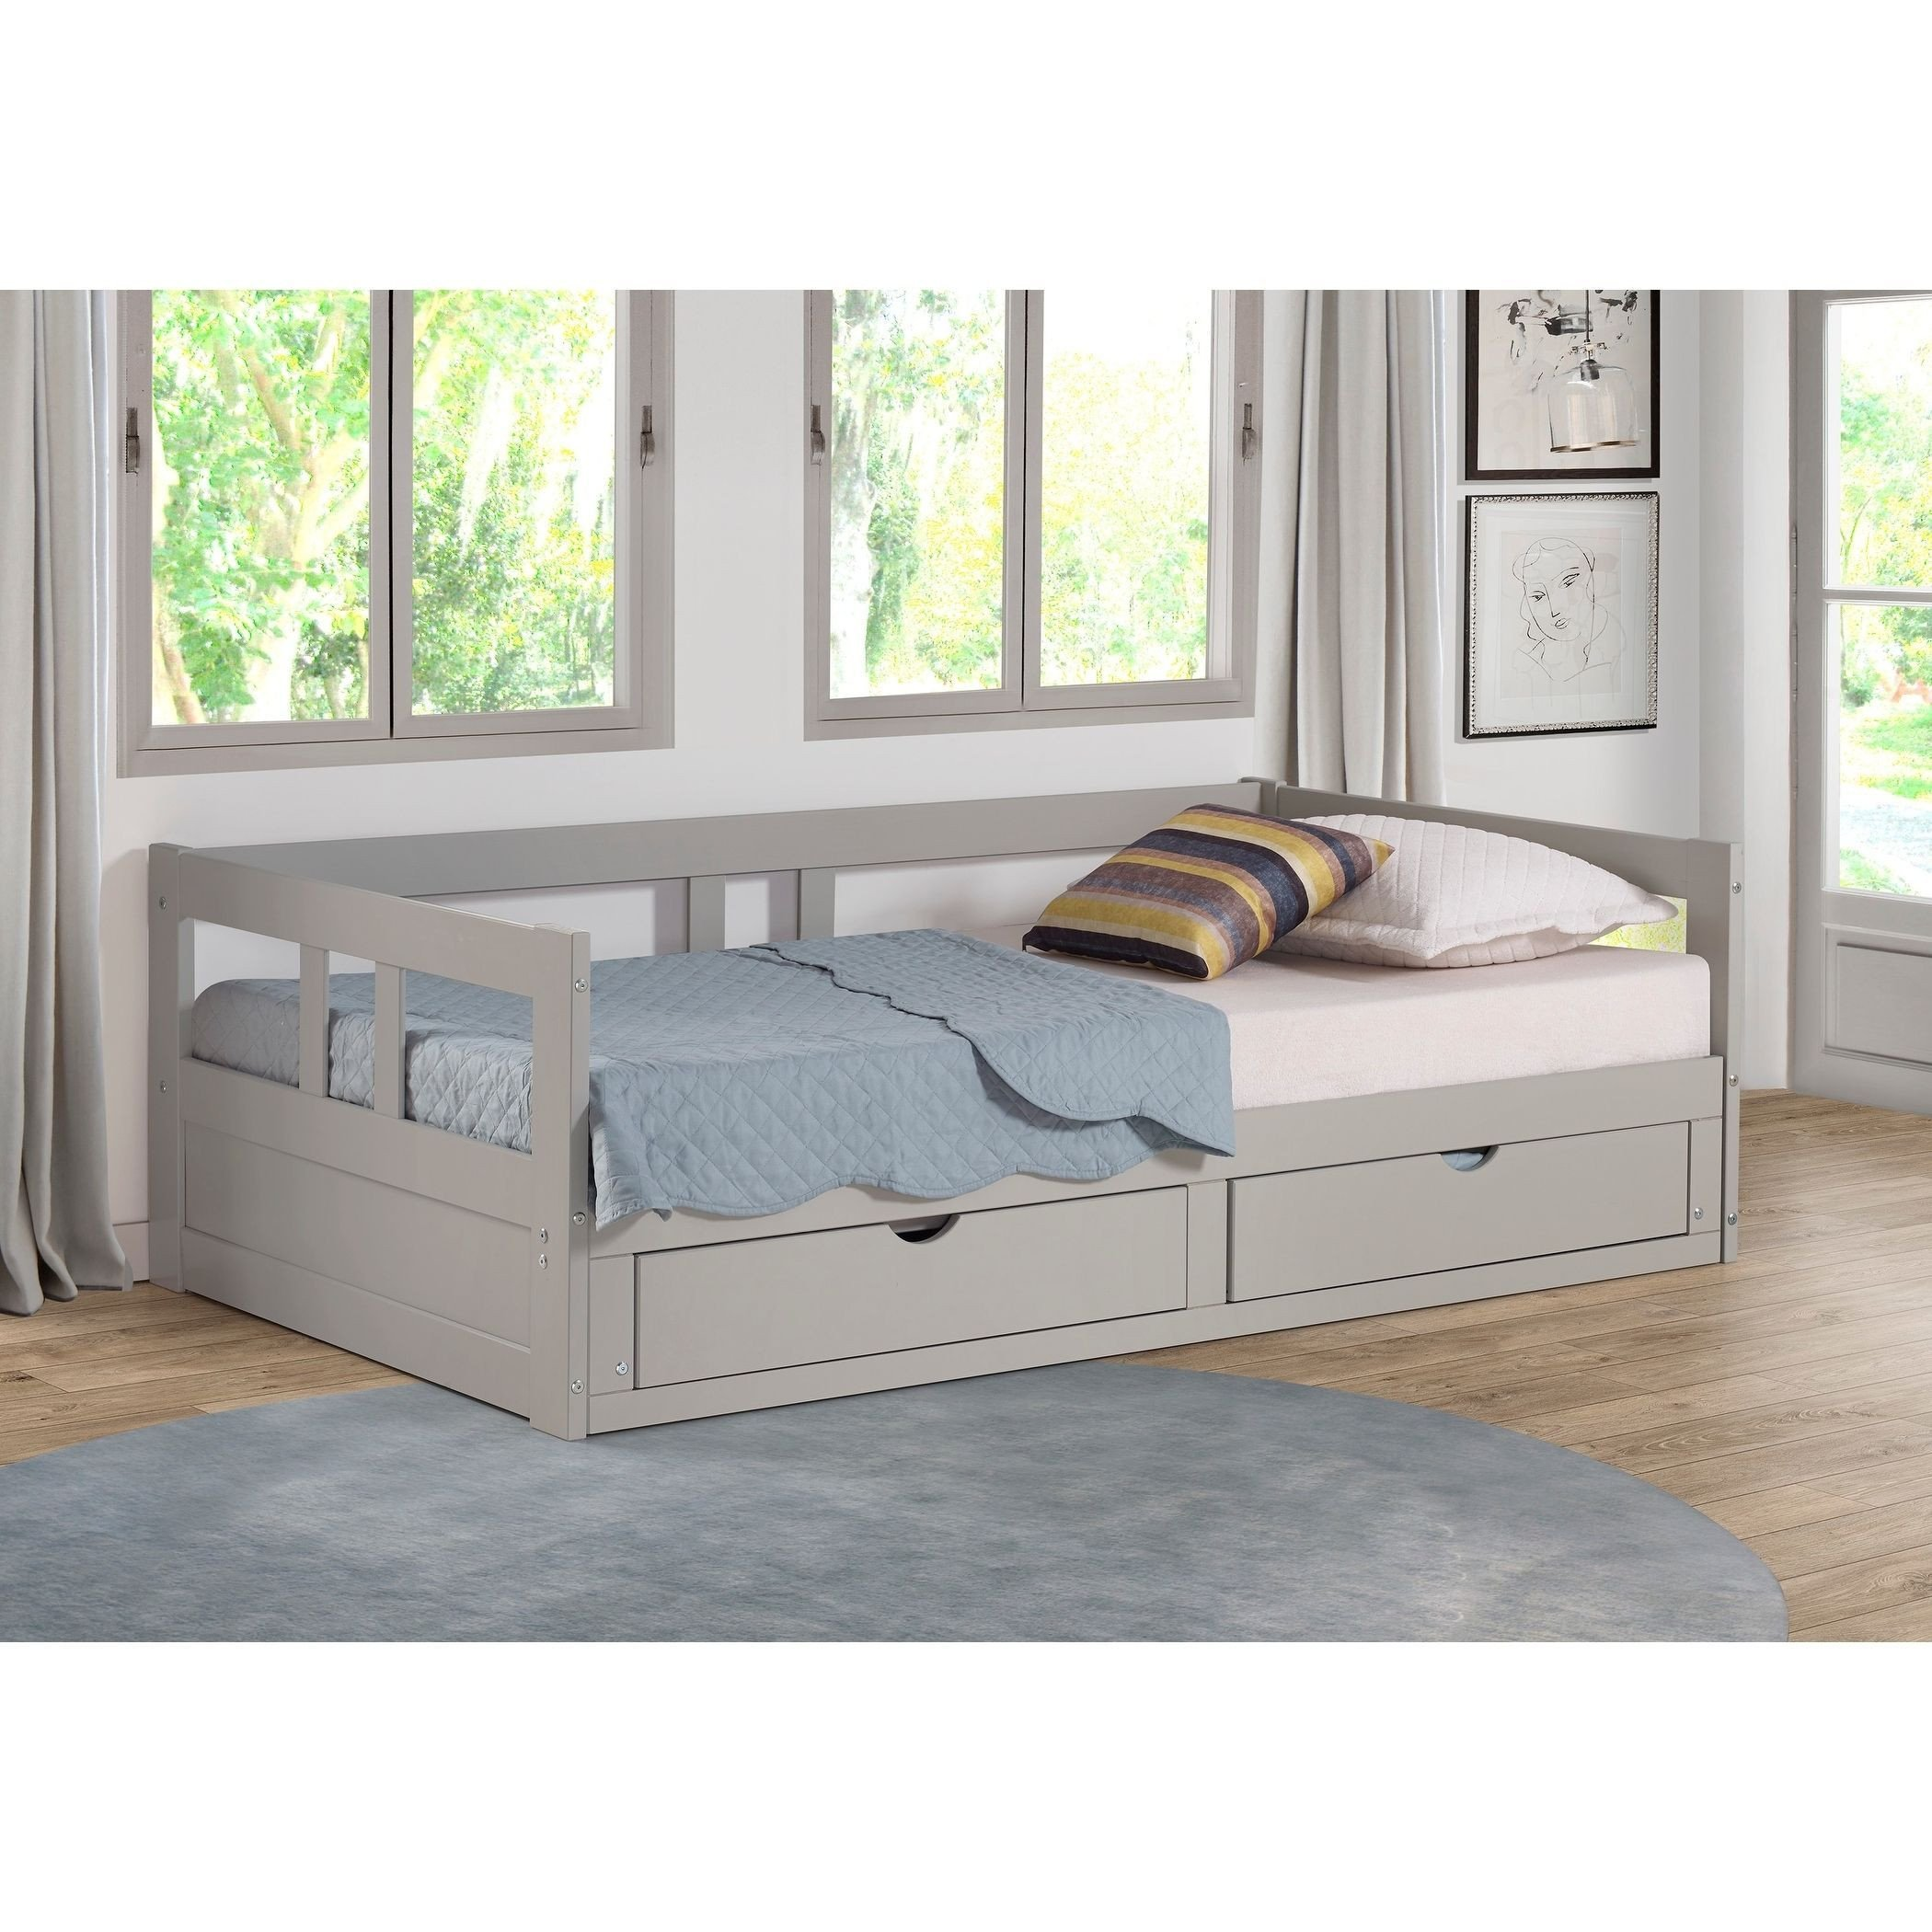 Twin Trundle Bedroom Set Luxury Melody Twin to King Trundle Daybed with Storage Drawers